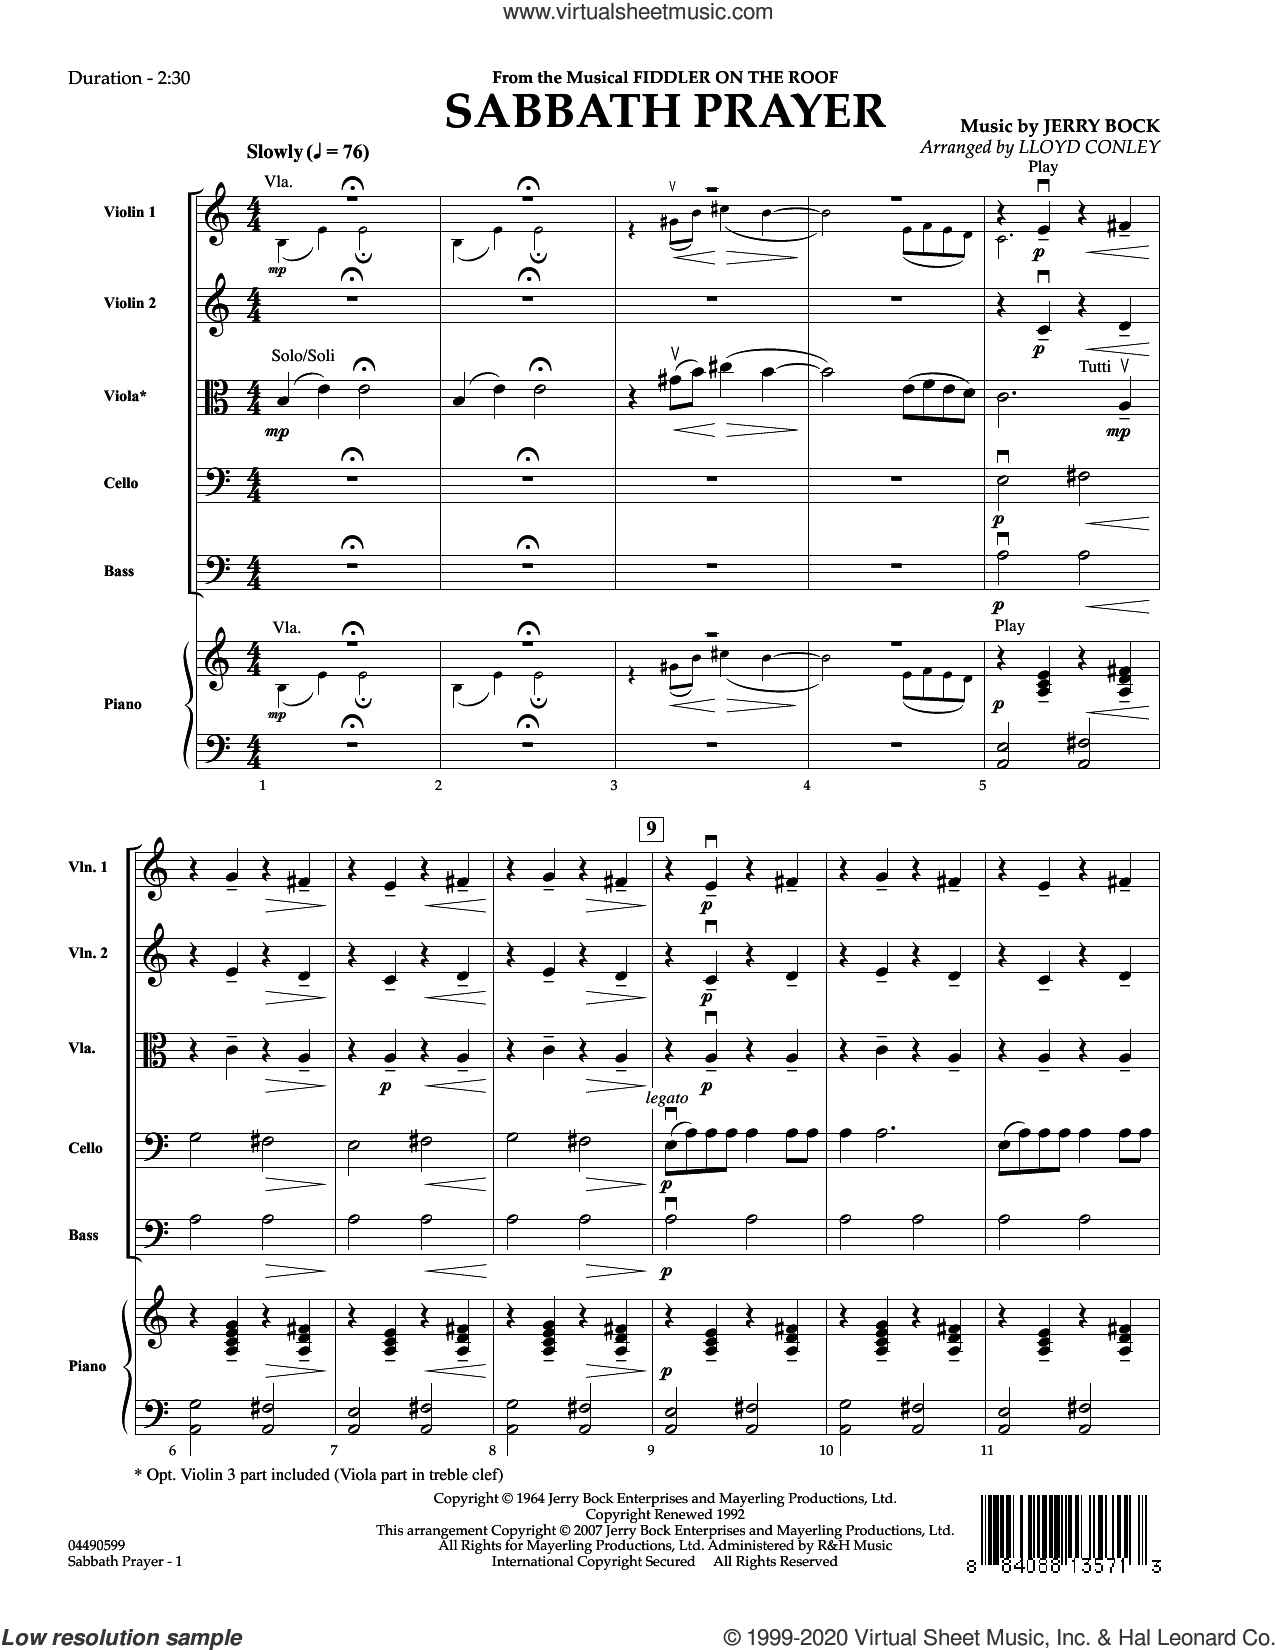 Sabbath Prayer (COMPLETE) sheet music for orchestra by Sheldon Harnick, Jerry Bock and Lloyd Conley, intermediate skill level